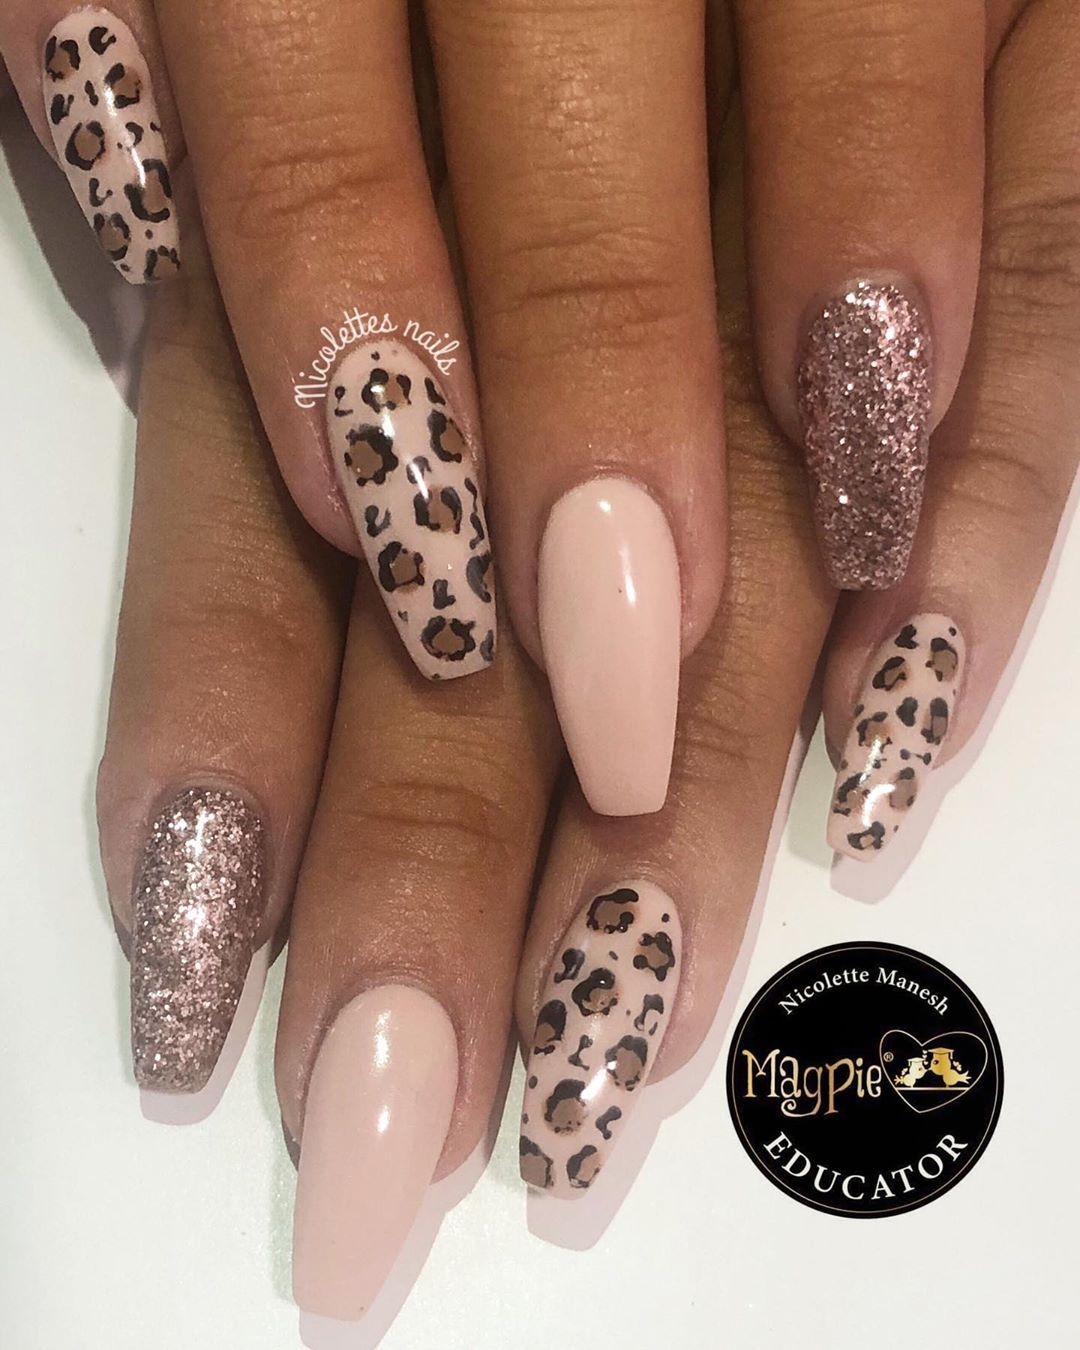 Leopard Print Using All Magpie Beauty Products Everythingmagpie Magpiebeauty Magpieglitter Scra Leopard Print Nails Leopard Nails Pink Leopard Nails